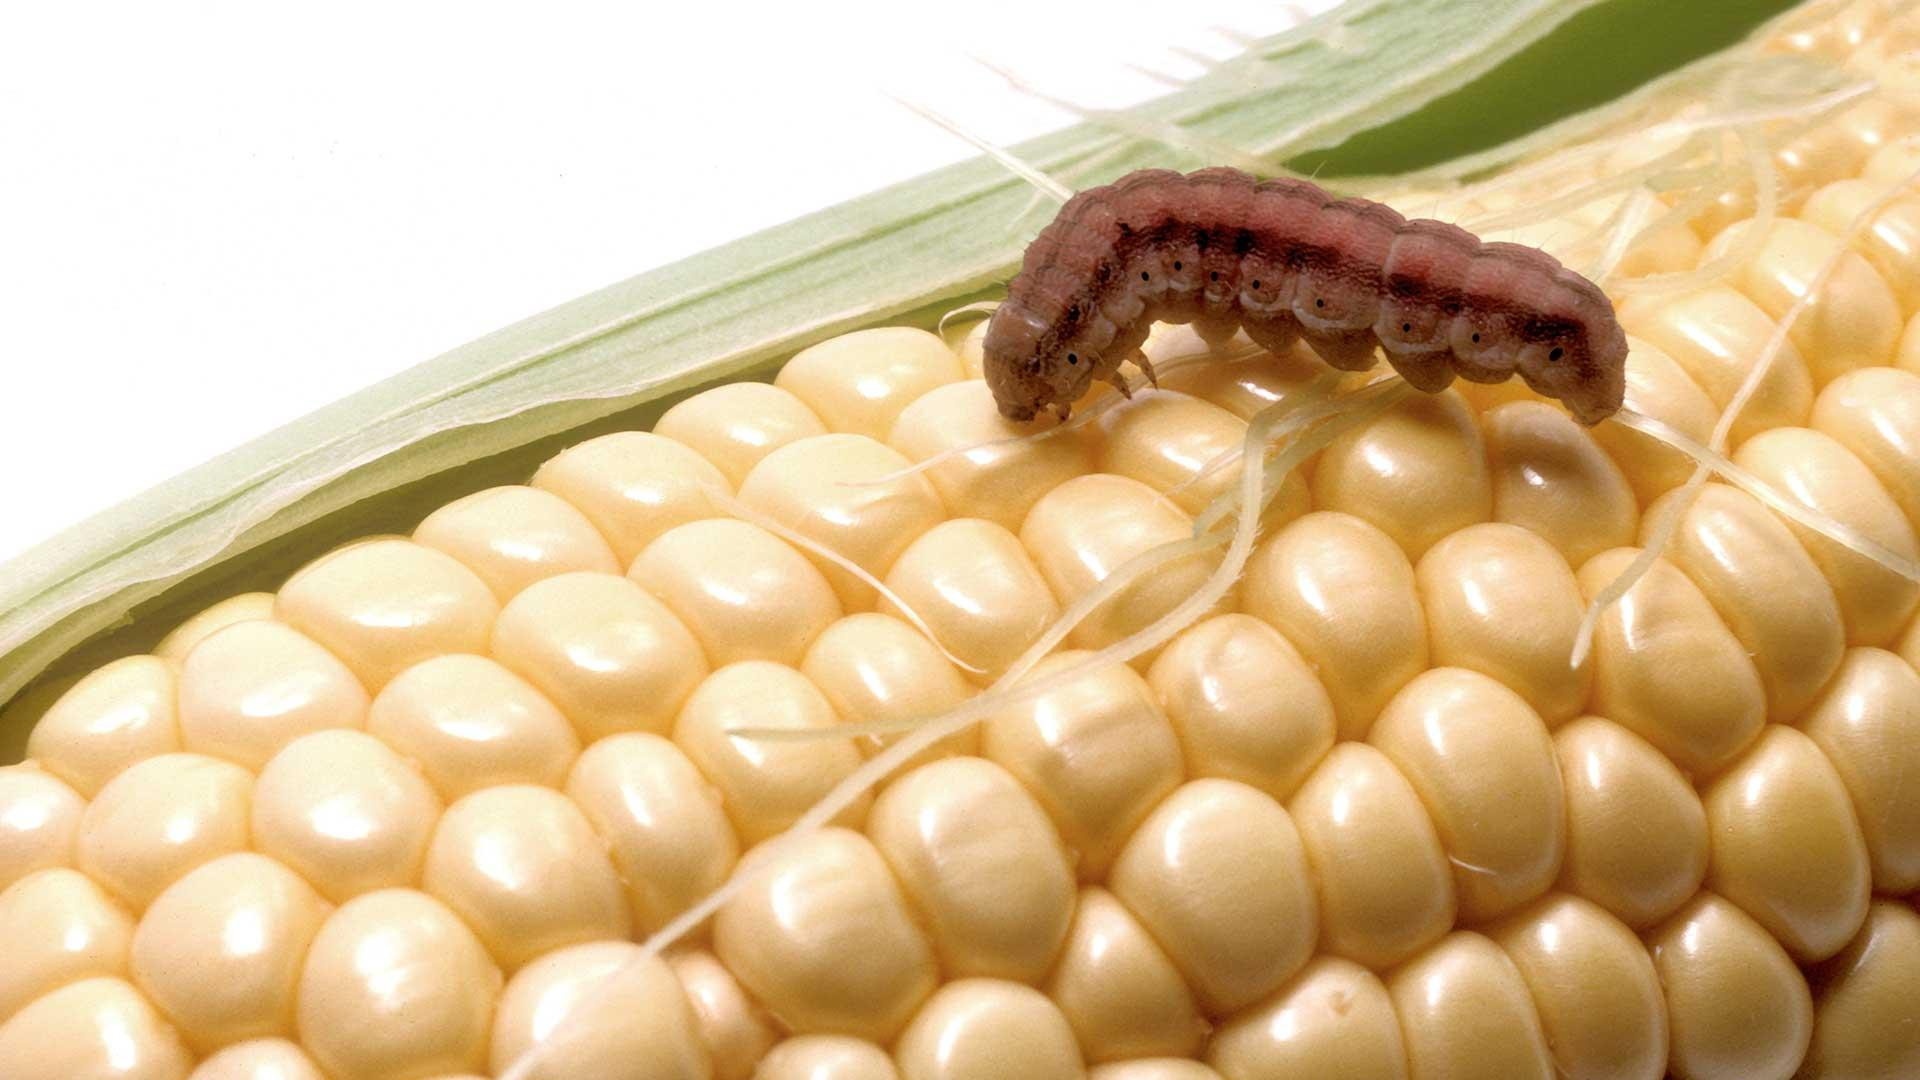 Corn earworm on ear of corn